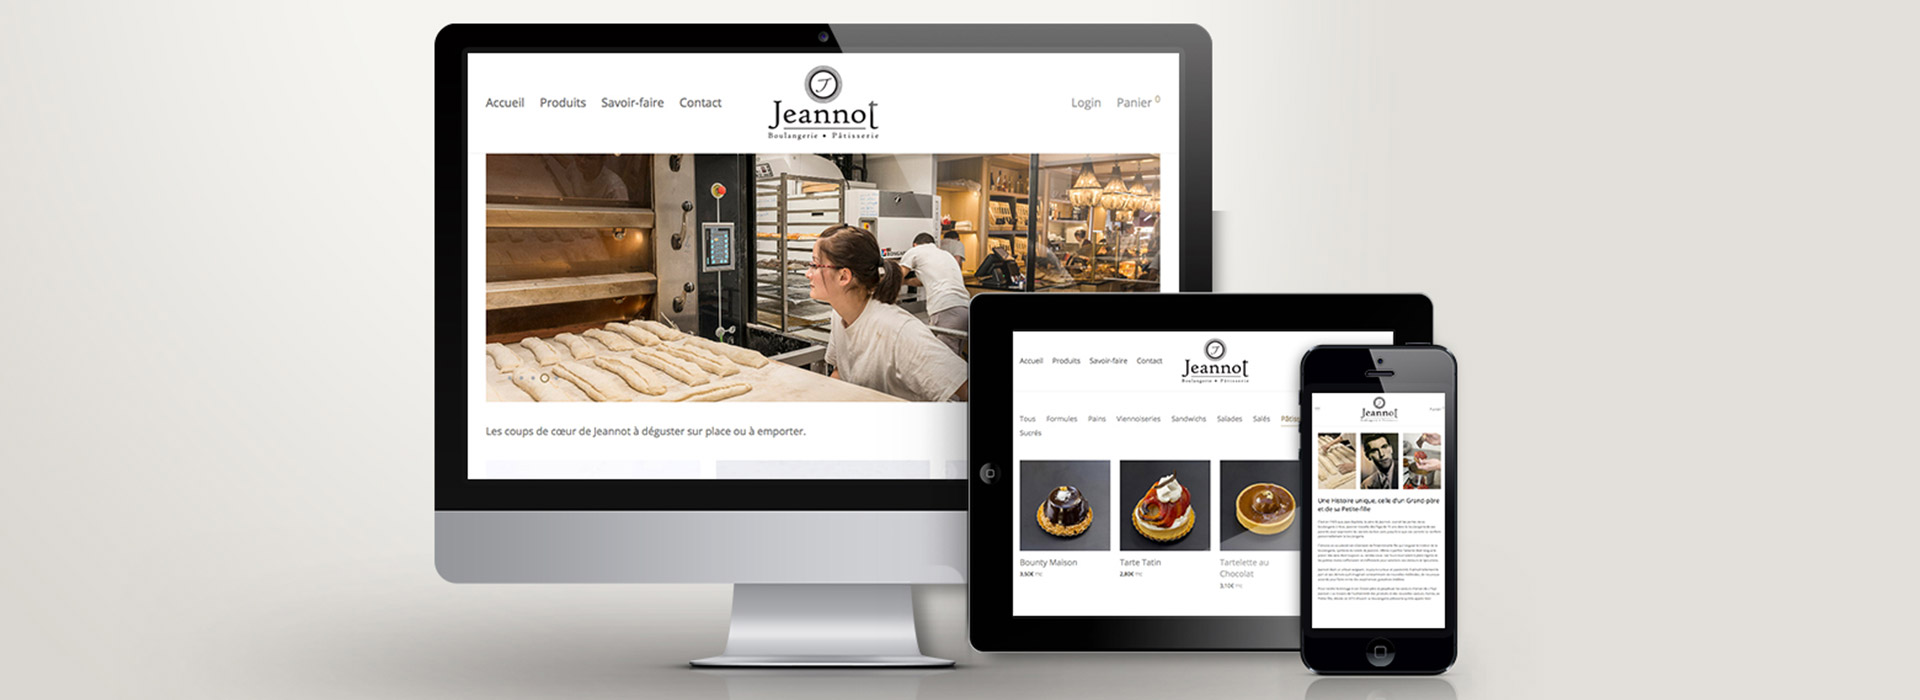 http://adsolue-site-web-jeannot-paysage-web